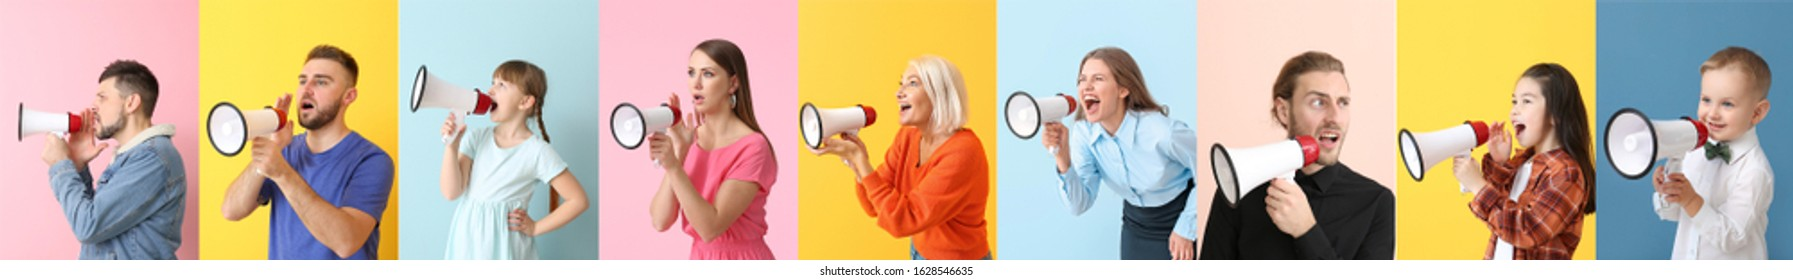 Collage of different people with megaphones on color background